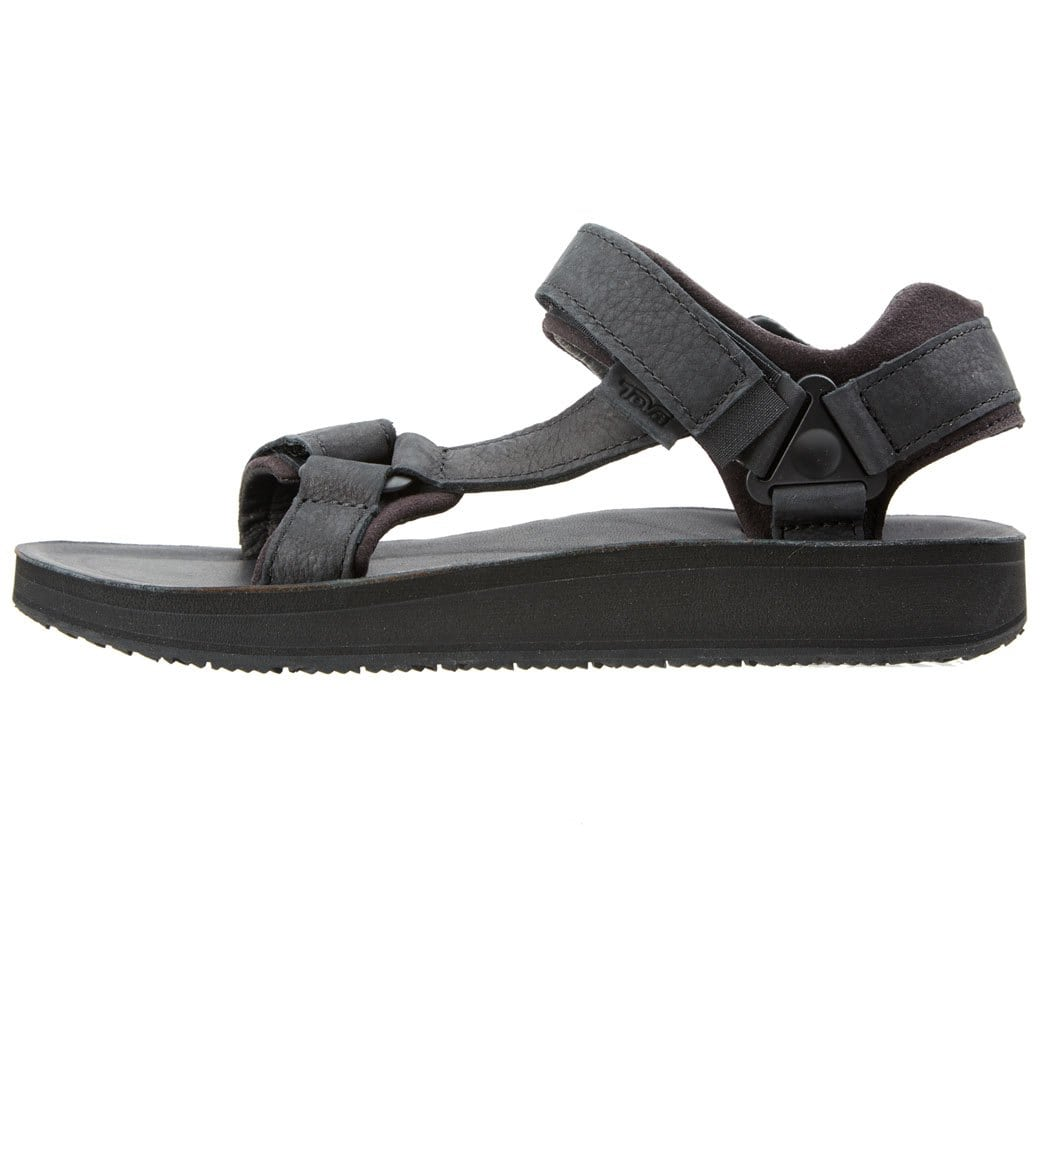 a9c2b1adf0fc61 Teva Women's Original Universal Premier-Leather Sandal at SwimOutlet ...